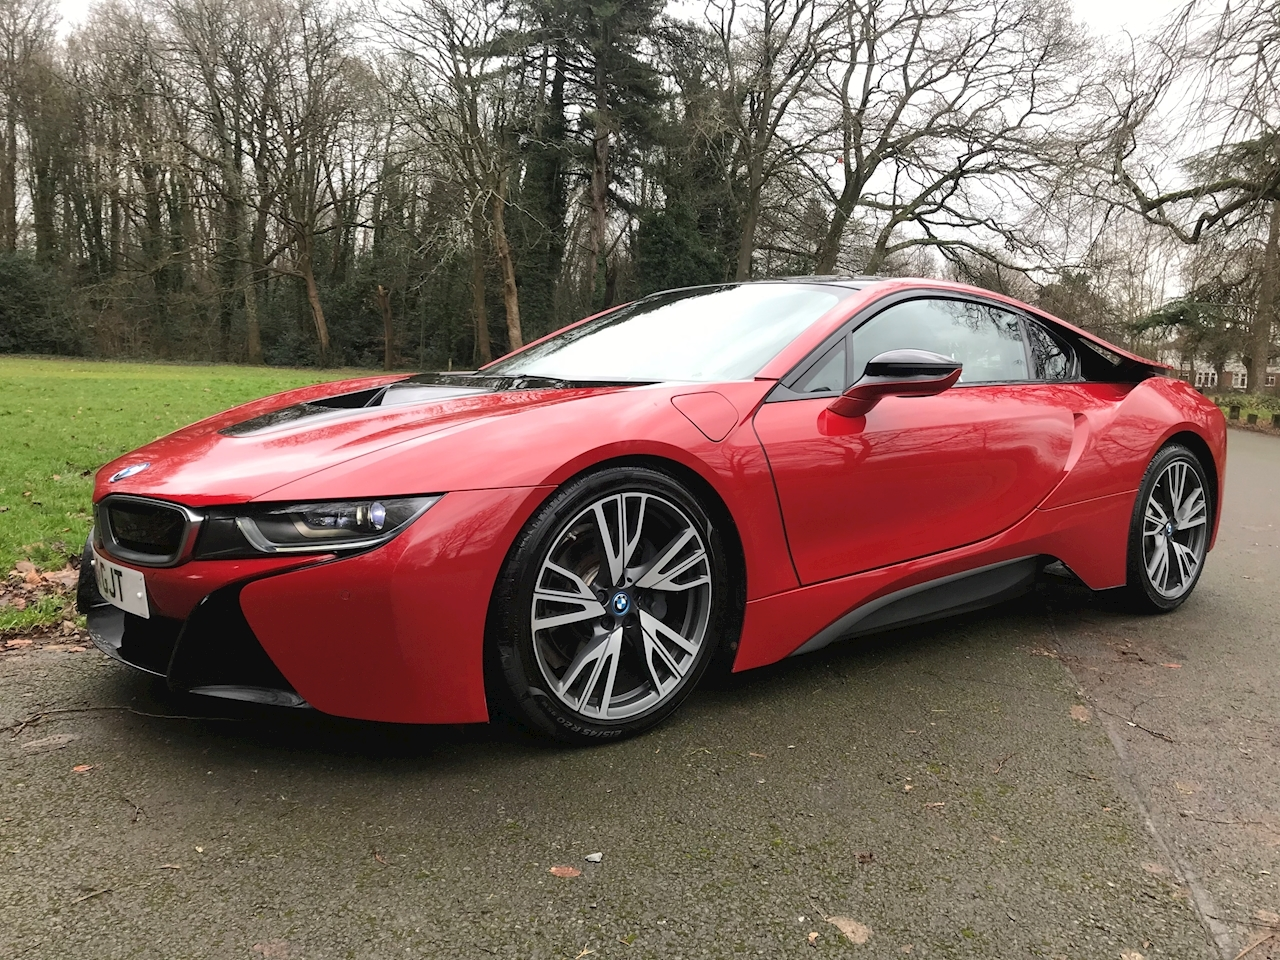 BMW I8 1.5 Protonic Red Edition 2017(17) - Large 3